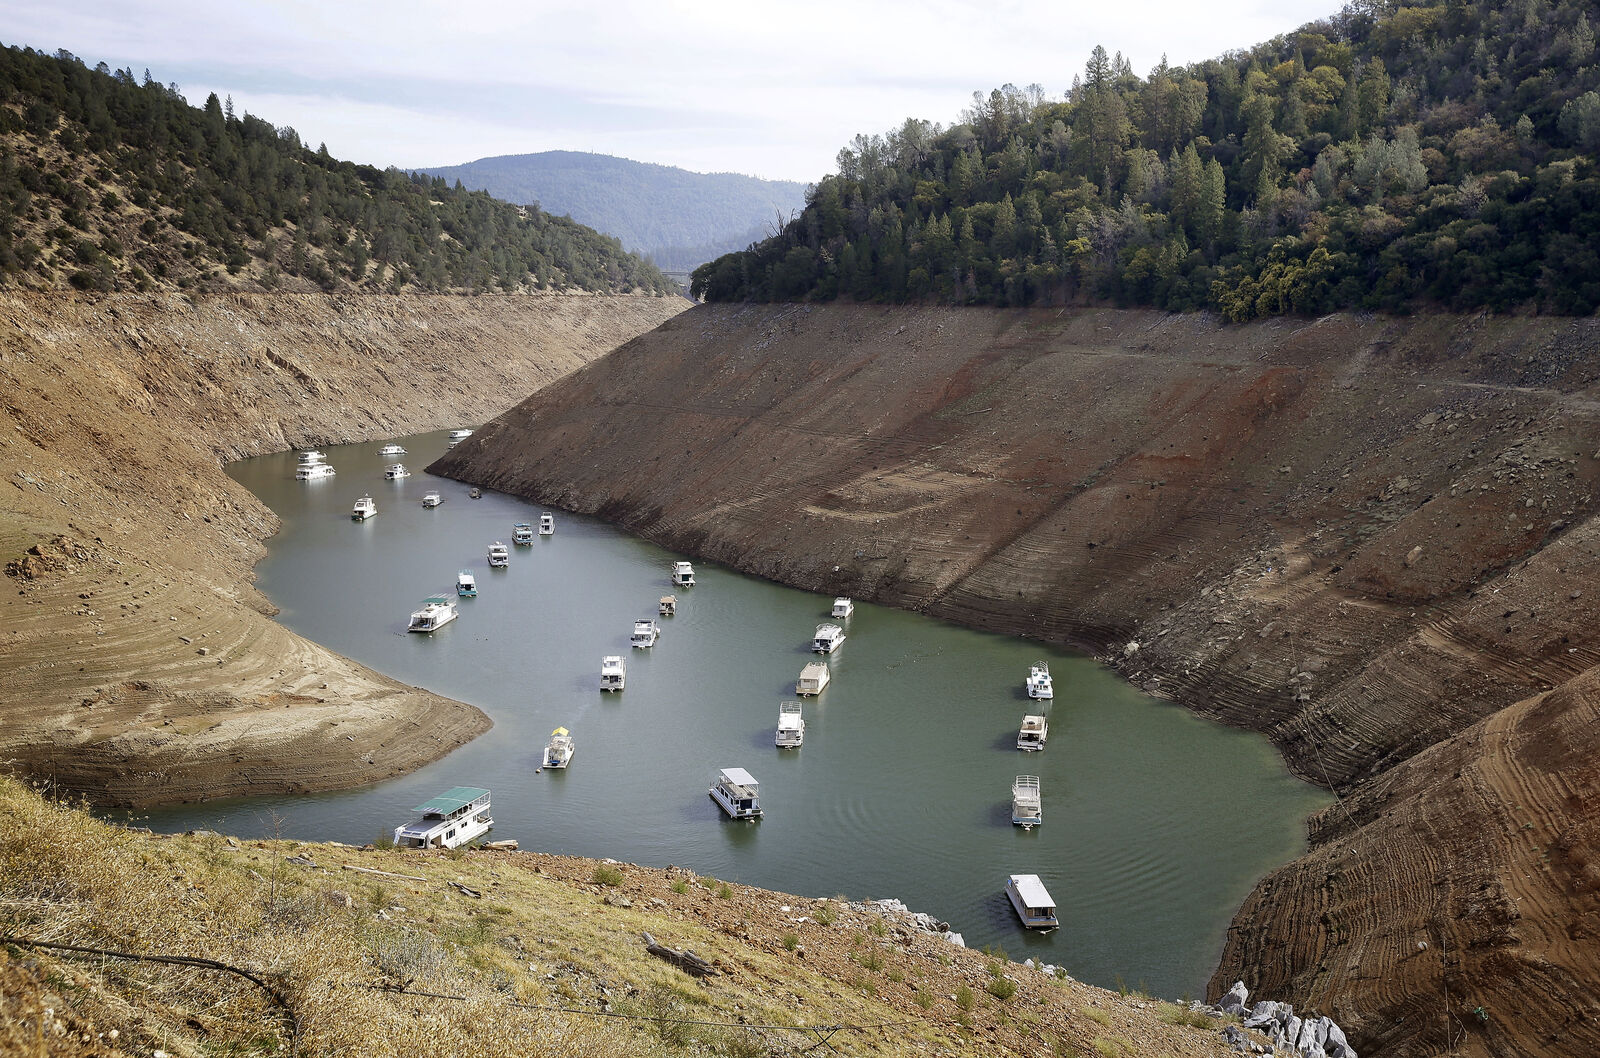 FILE - In this Oct. 30, 2014, file photo, houseboats float in the drought-lowered waters of Oroville Lake near Oroville, Calif. (AP Photo/Rich Pedroncelli, File)